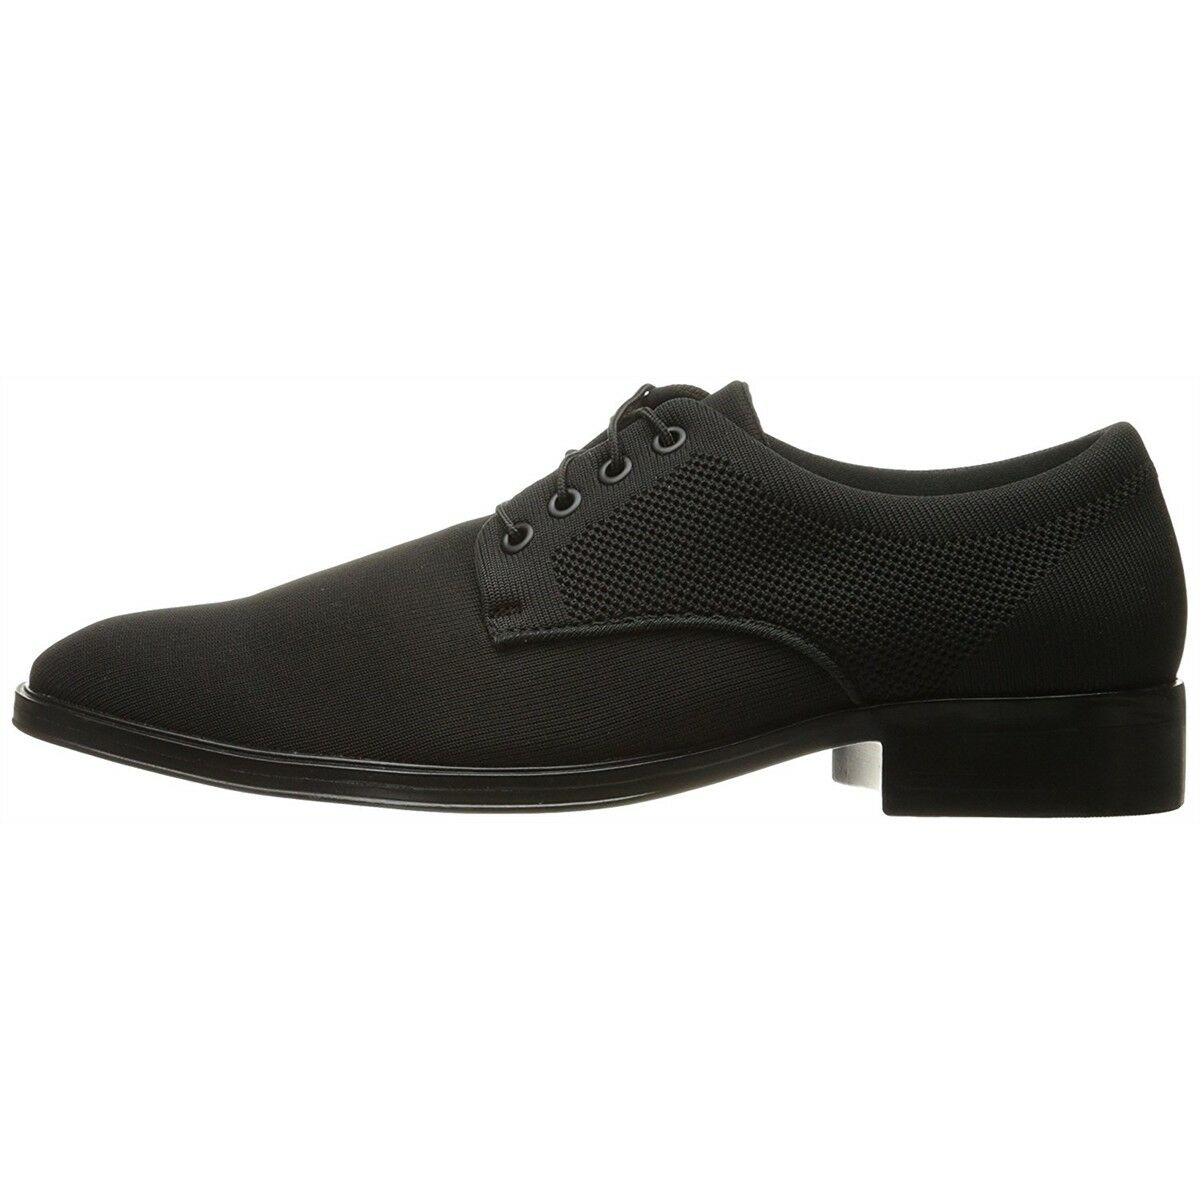 design unico Mark Nason Uomo Uomo Uomo NEW Duke Dressknit Oxford Water-Resistant nero Dress scarpe  fino al 70% di sconto